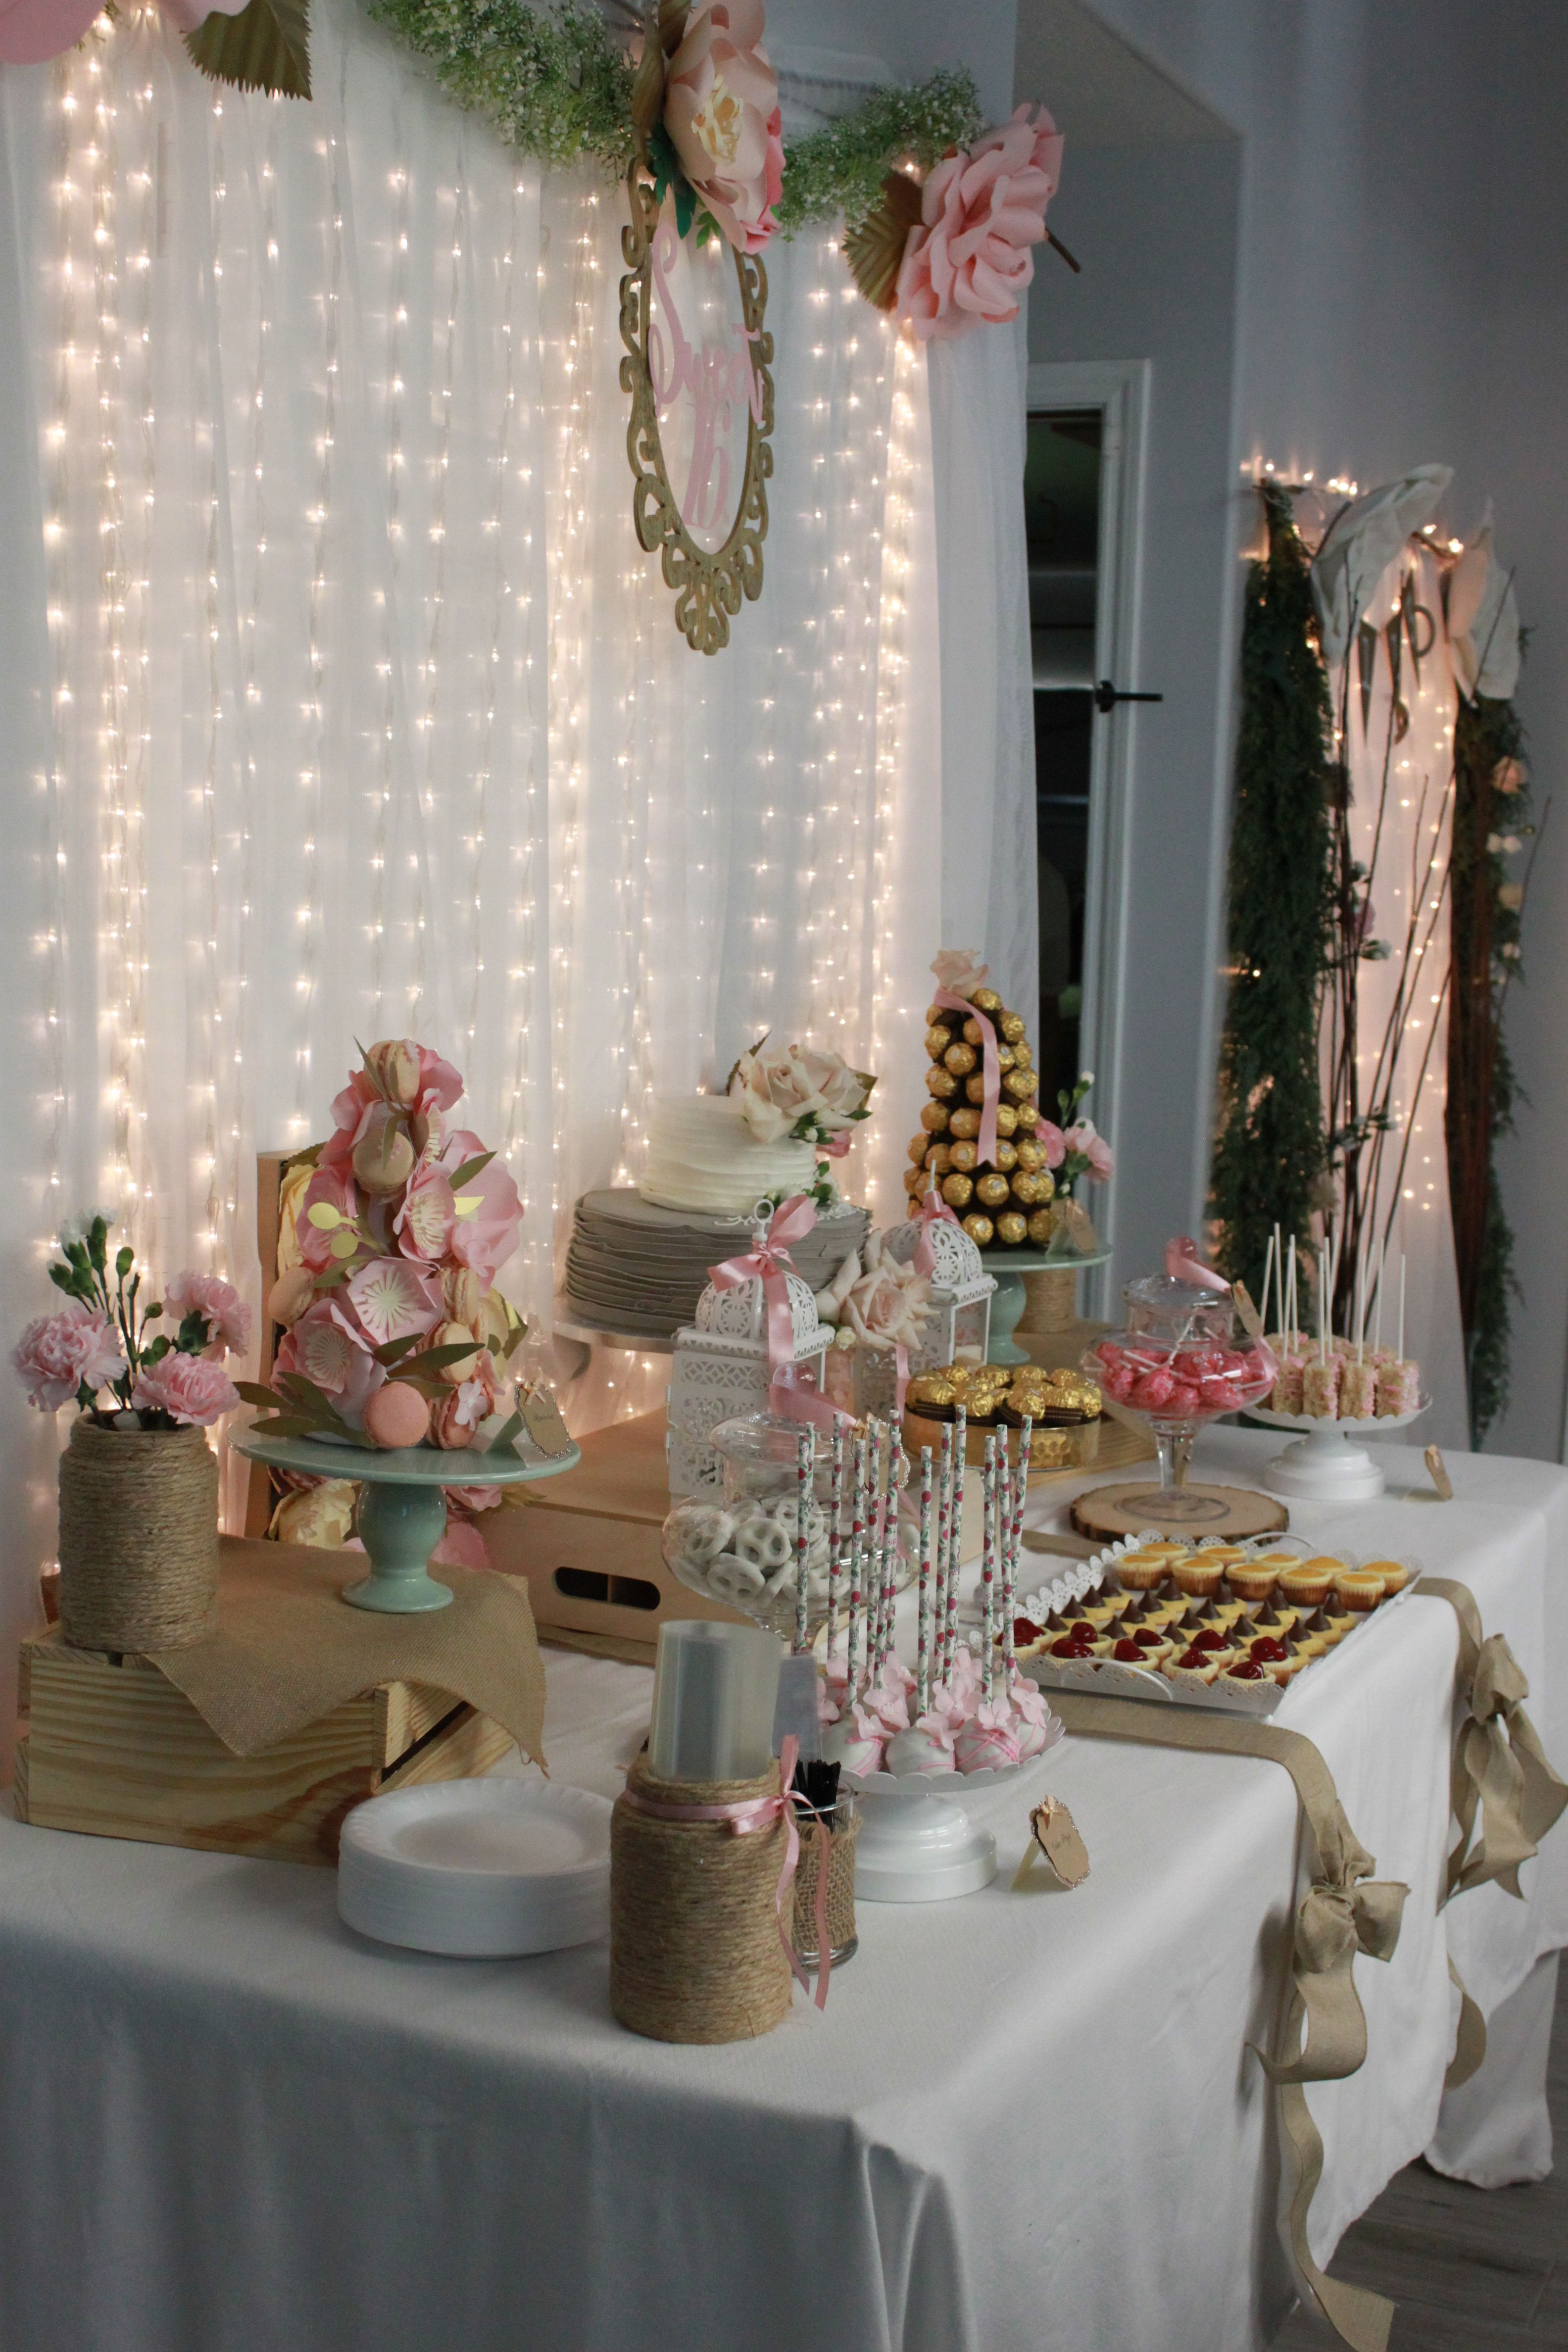 Pin by DelecTable Decor on Sweet 16: BOHO CHIC | Table ...